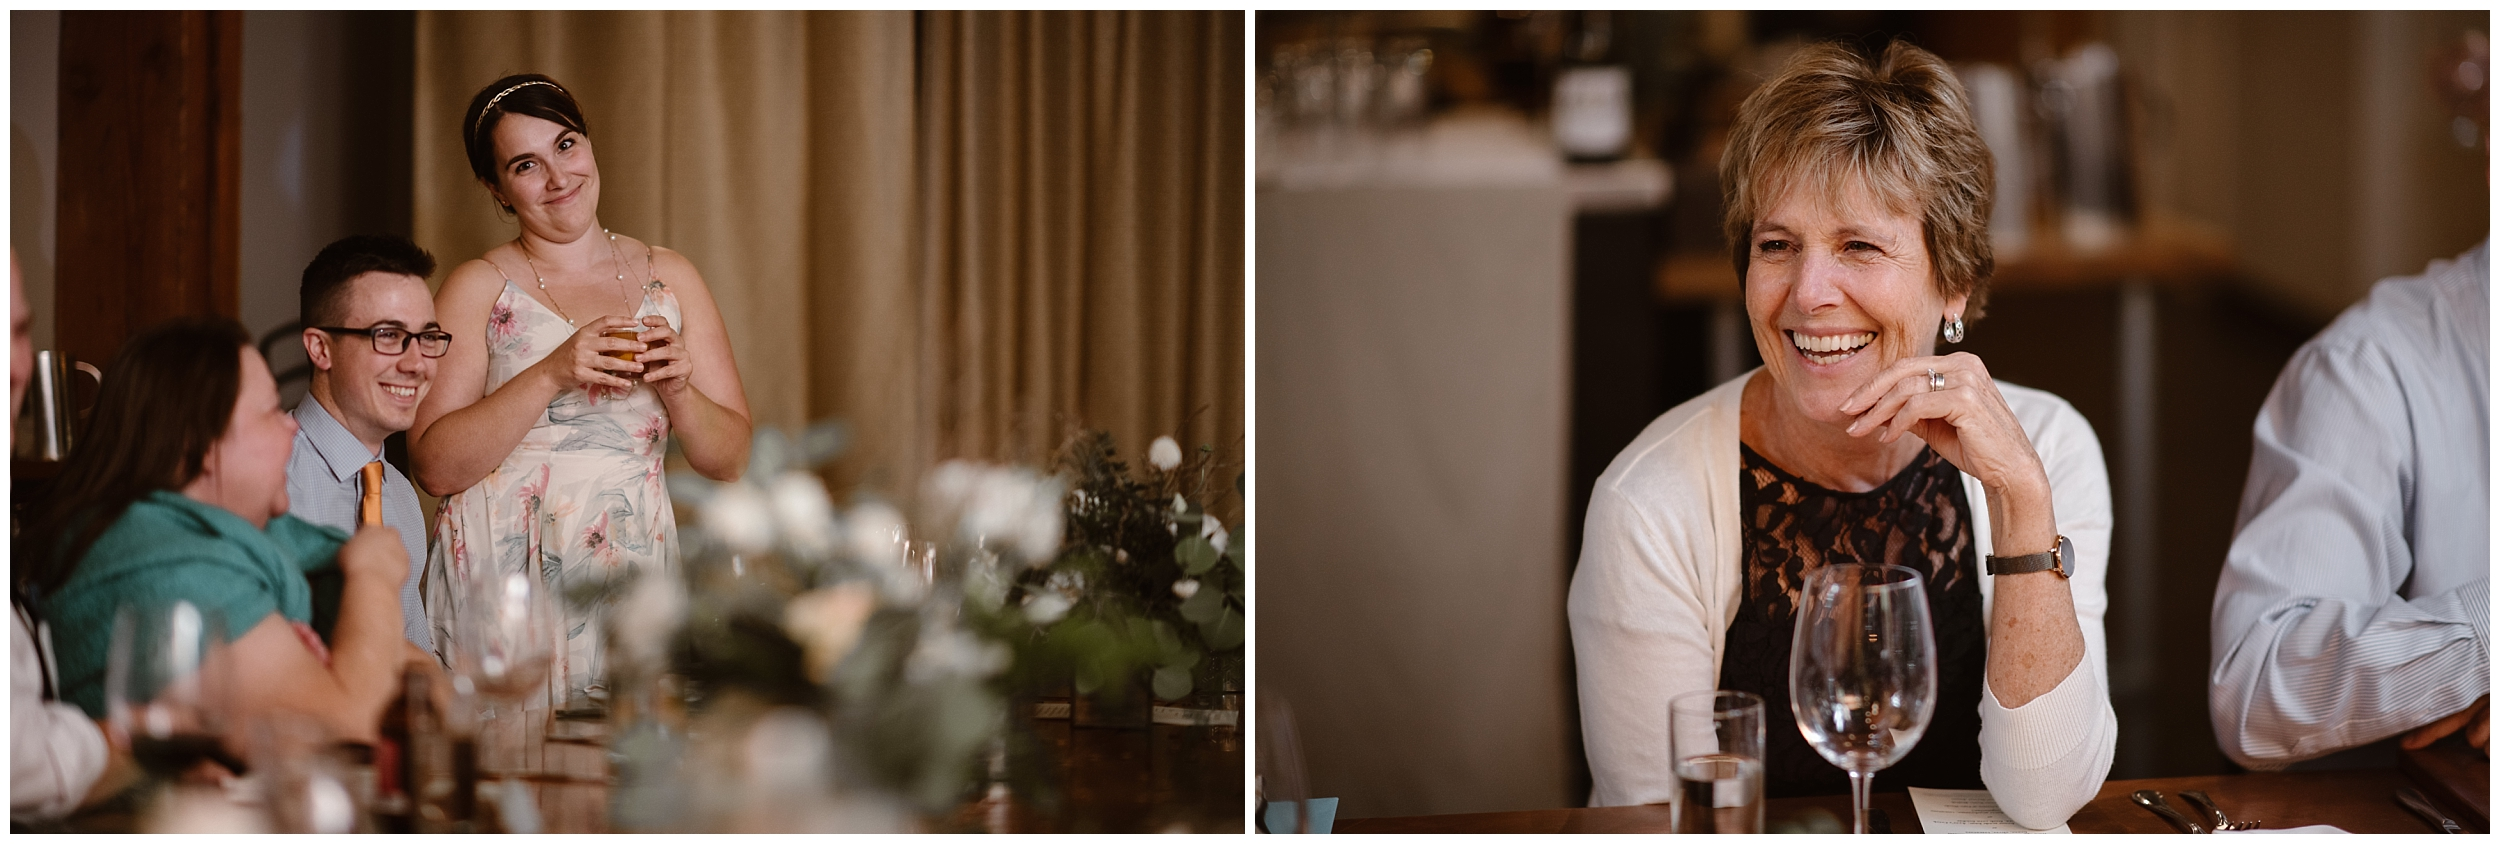 Family members laugh, toast, and cheer in these side-by-side elopement pictures captured by Adventure Instead, a Portland elopement photographer. These photos were captured at a Portland restaurant during their party after eloping.